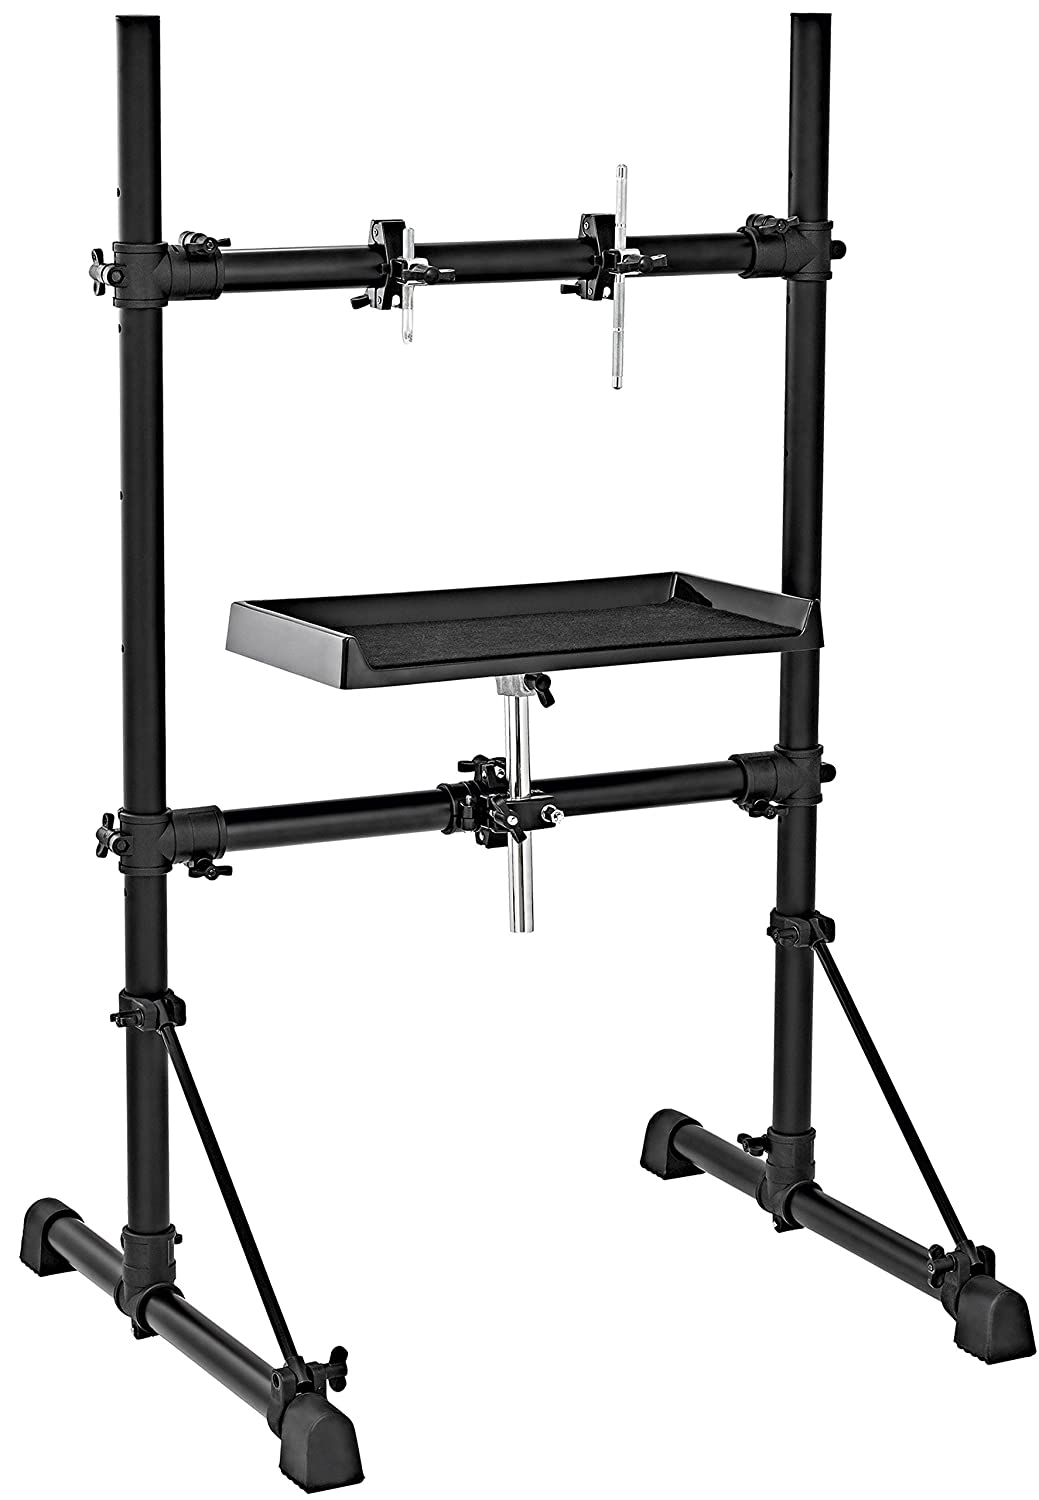 Meinl Percussion TMCR Cajon Rack for Seated Players, Black Meinl USA L.C.